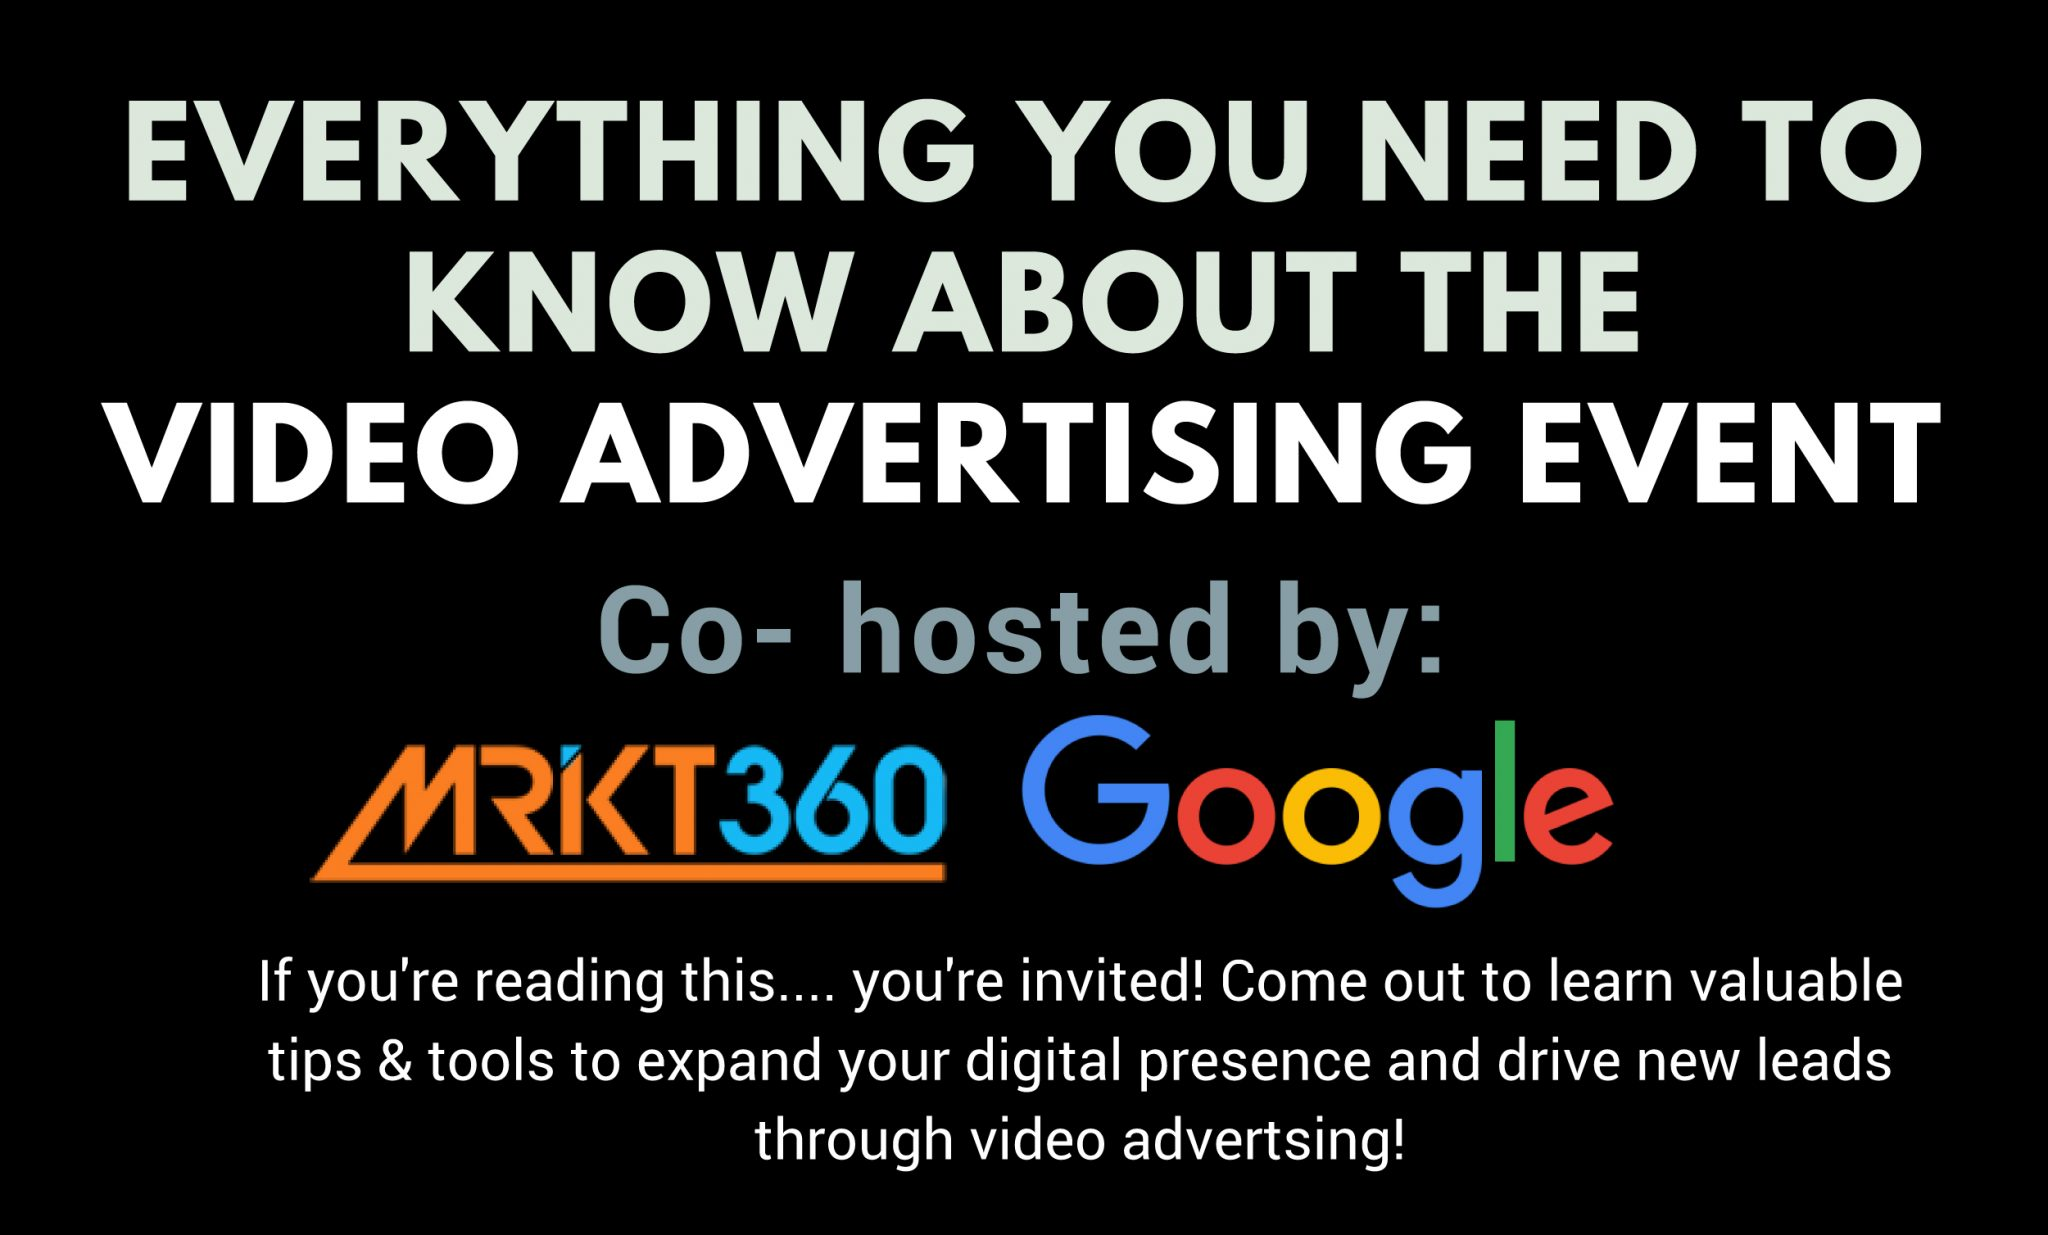 Google Partner Connect Video Advertising Event